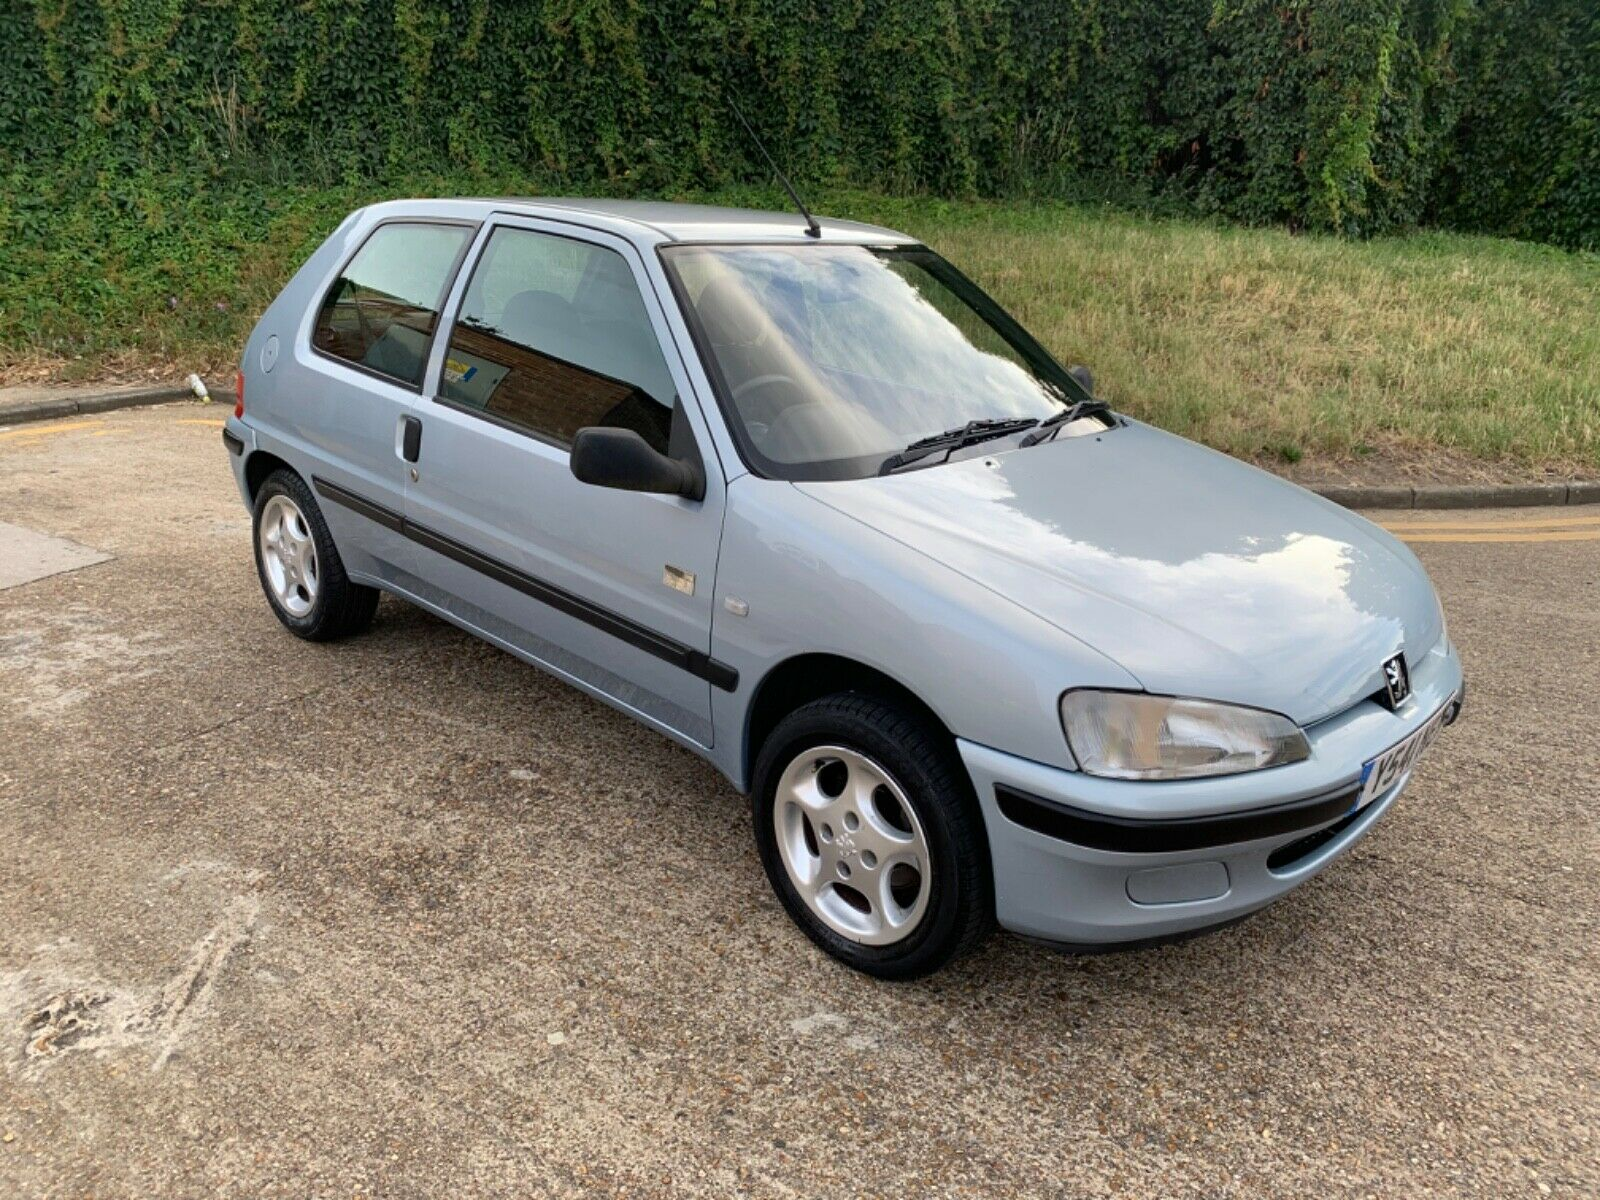 Peugeot-106-Independence-edition-2001-11-blue-first-car-buyer-gti-82k